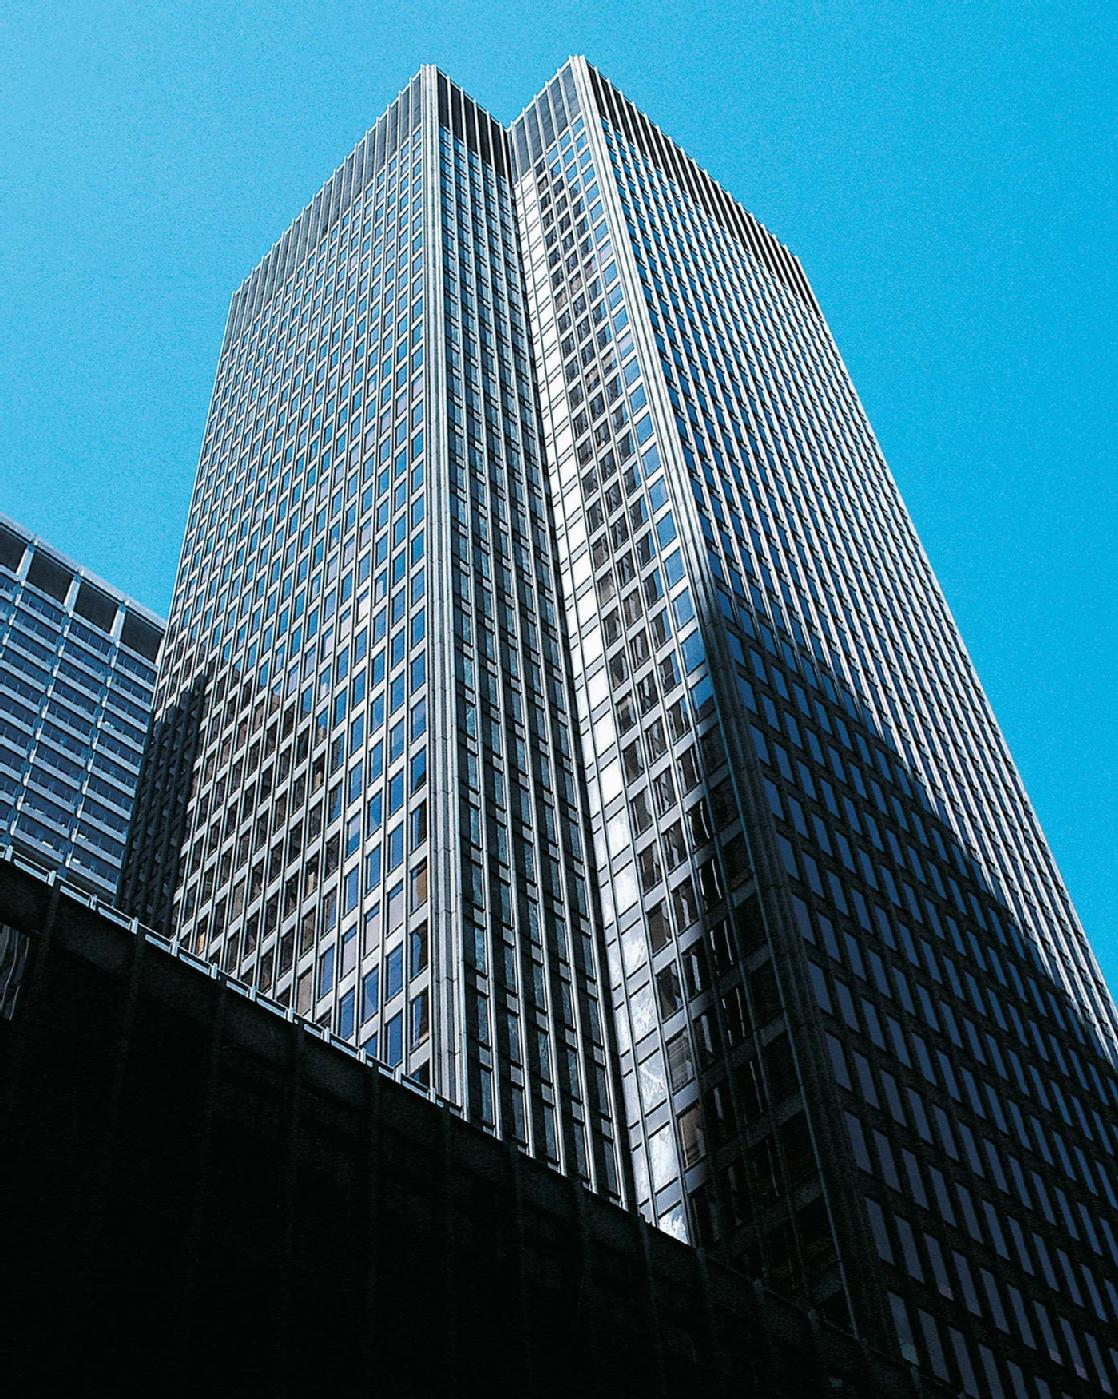 Once a radical statement, Park Avenue's Seagram Building is now an emblem of classic design